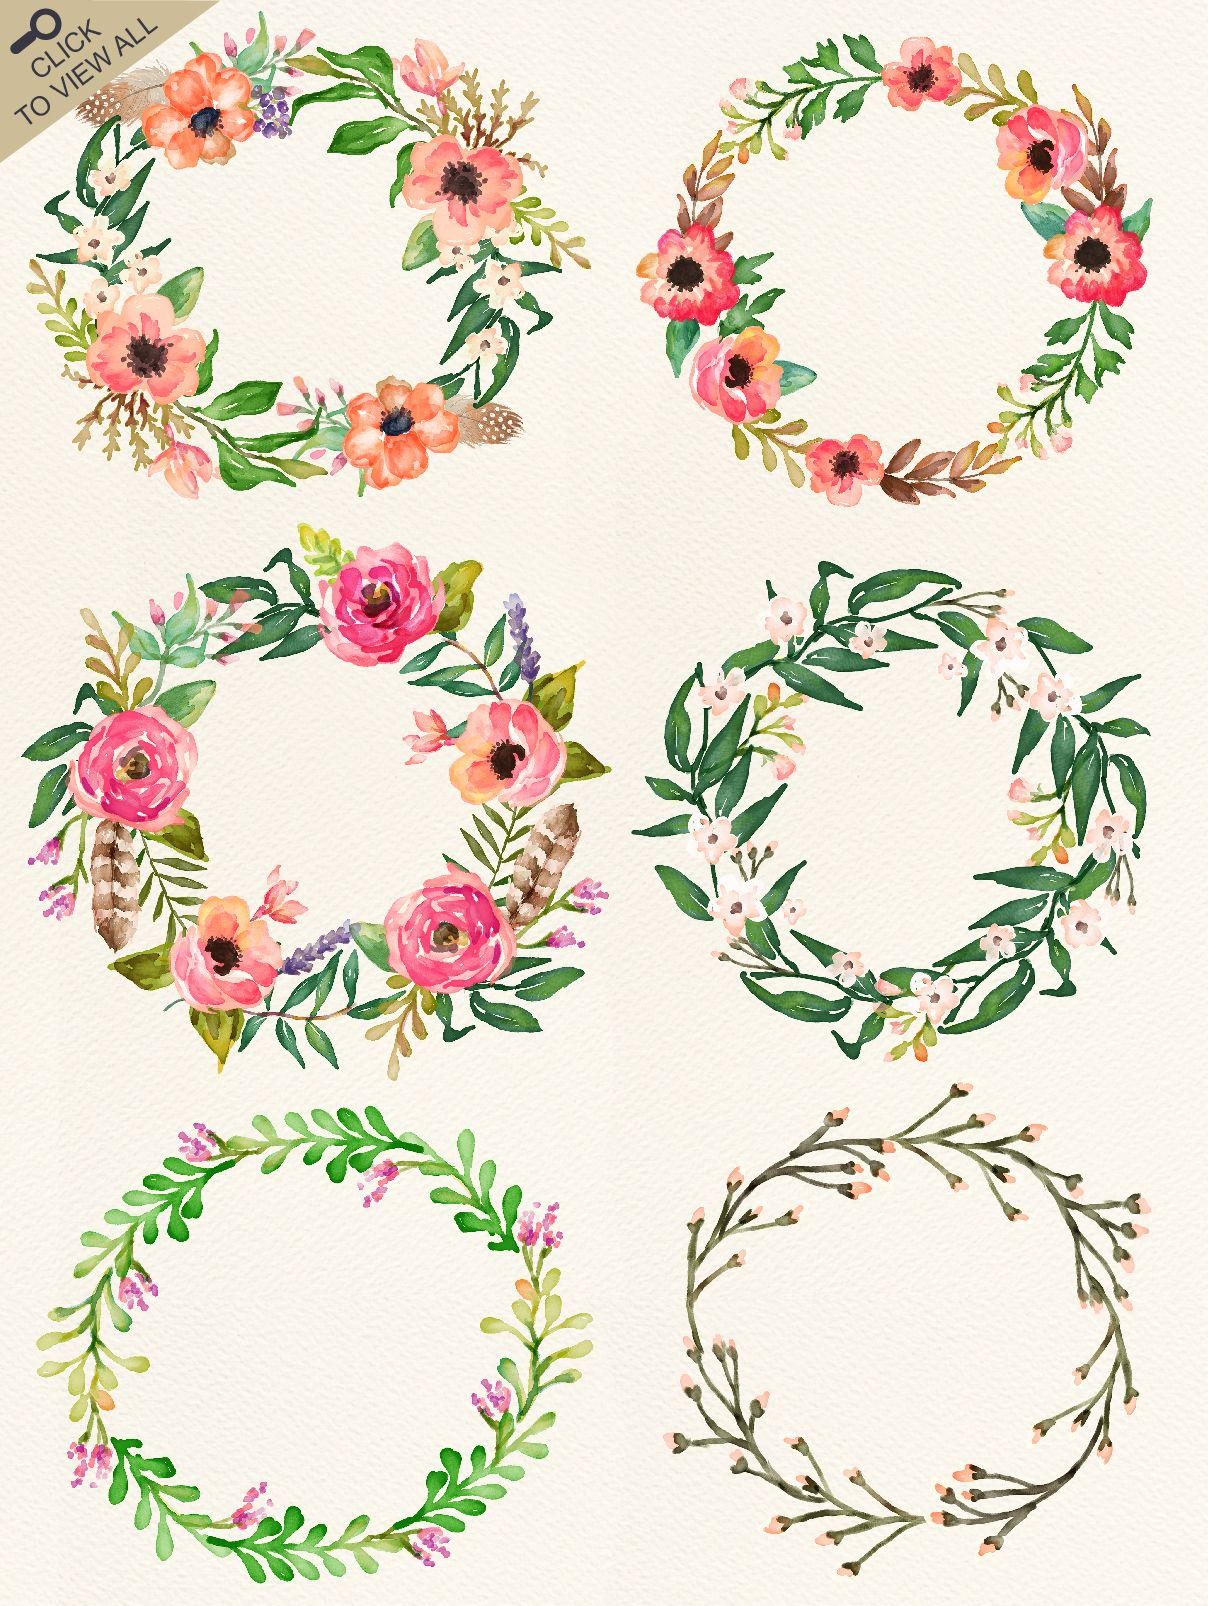 Watercolor flowers png clipart illustrations on creative market - Watercolor Flower Diy Pack Vol 2 By Graphic Box On Creative Market